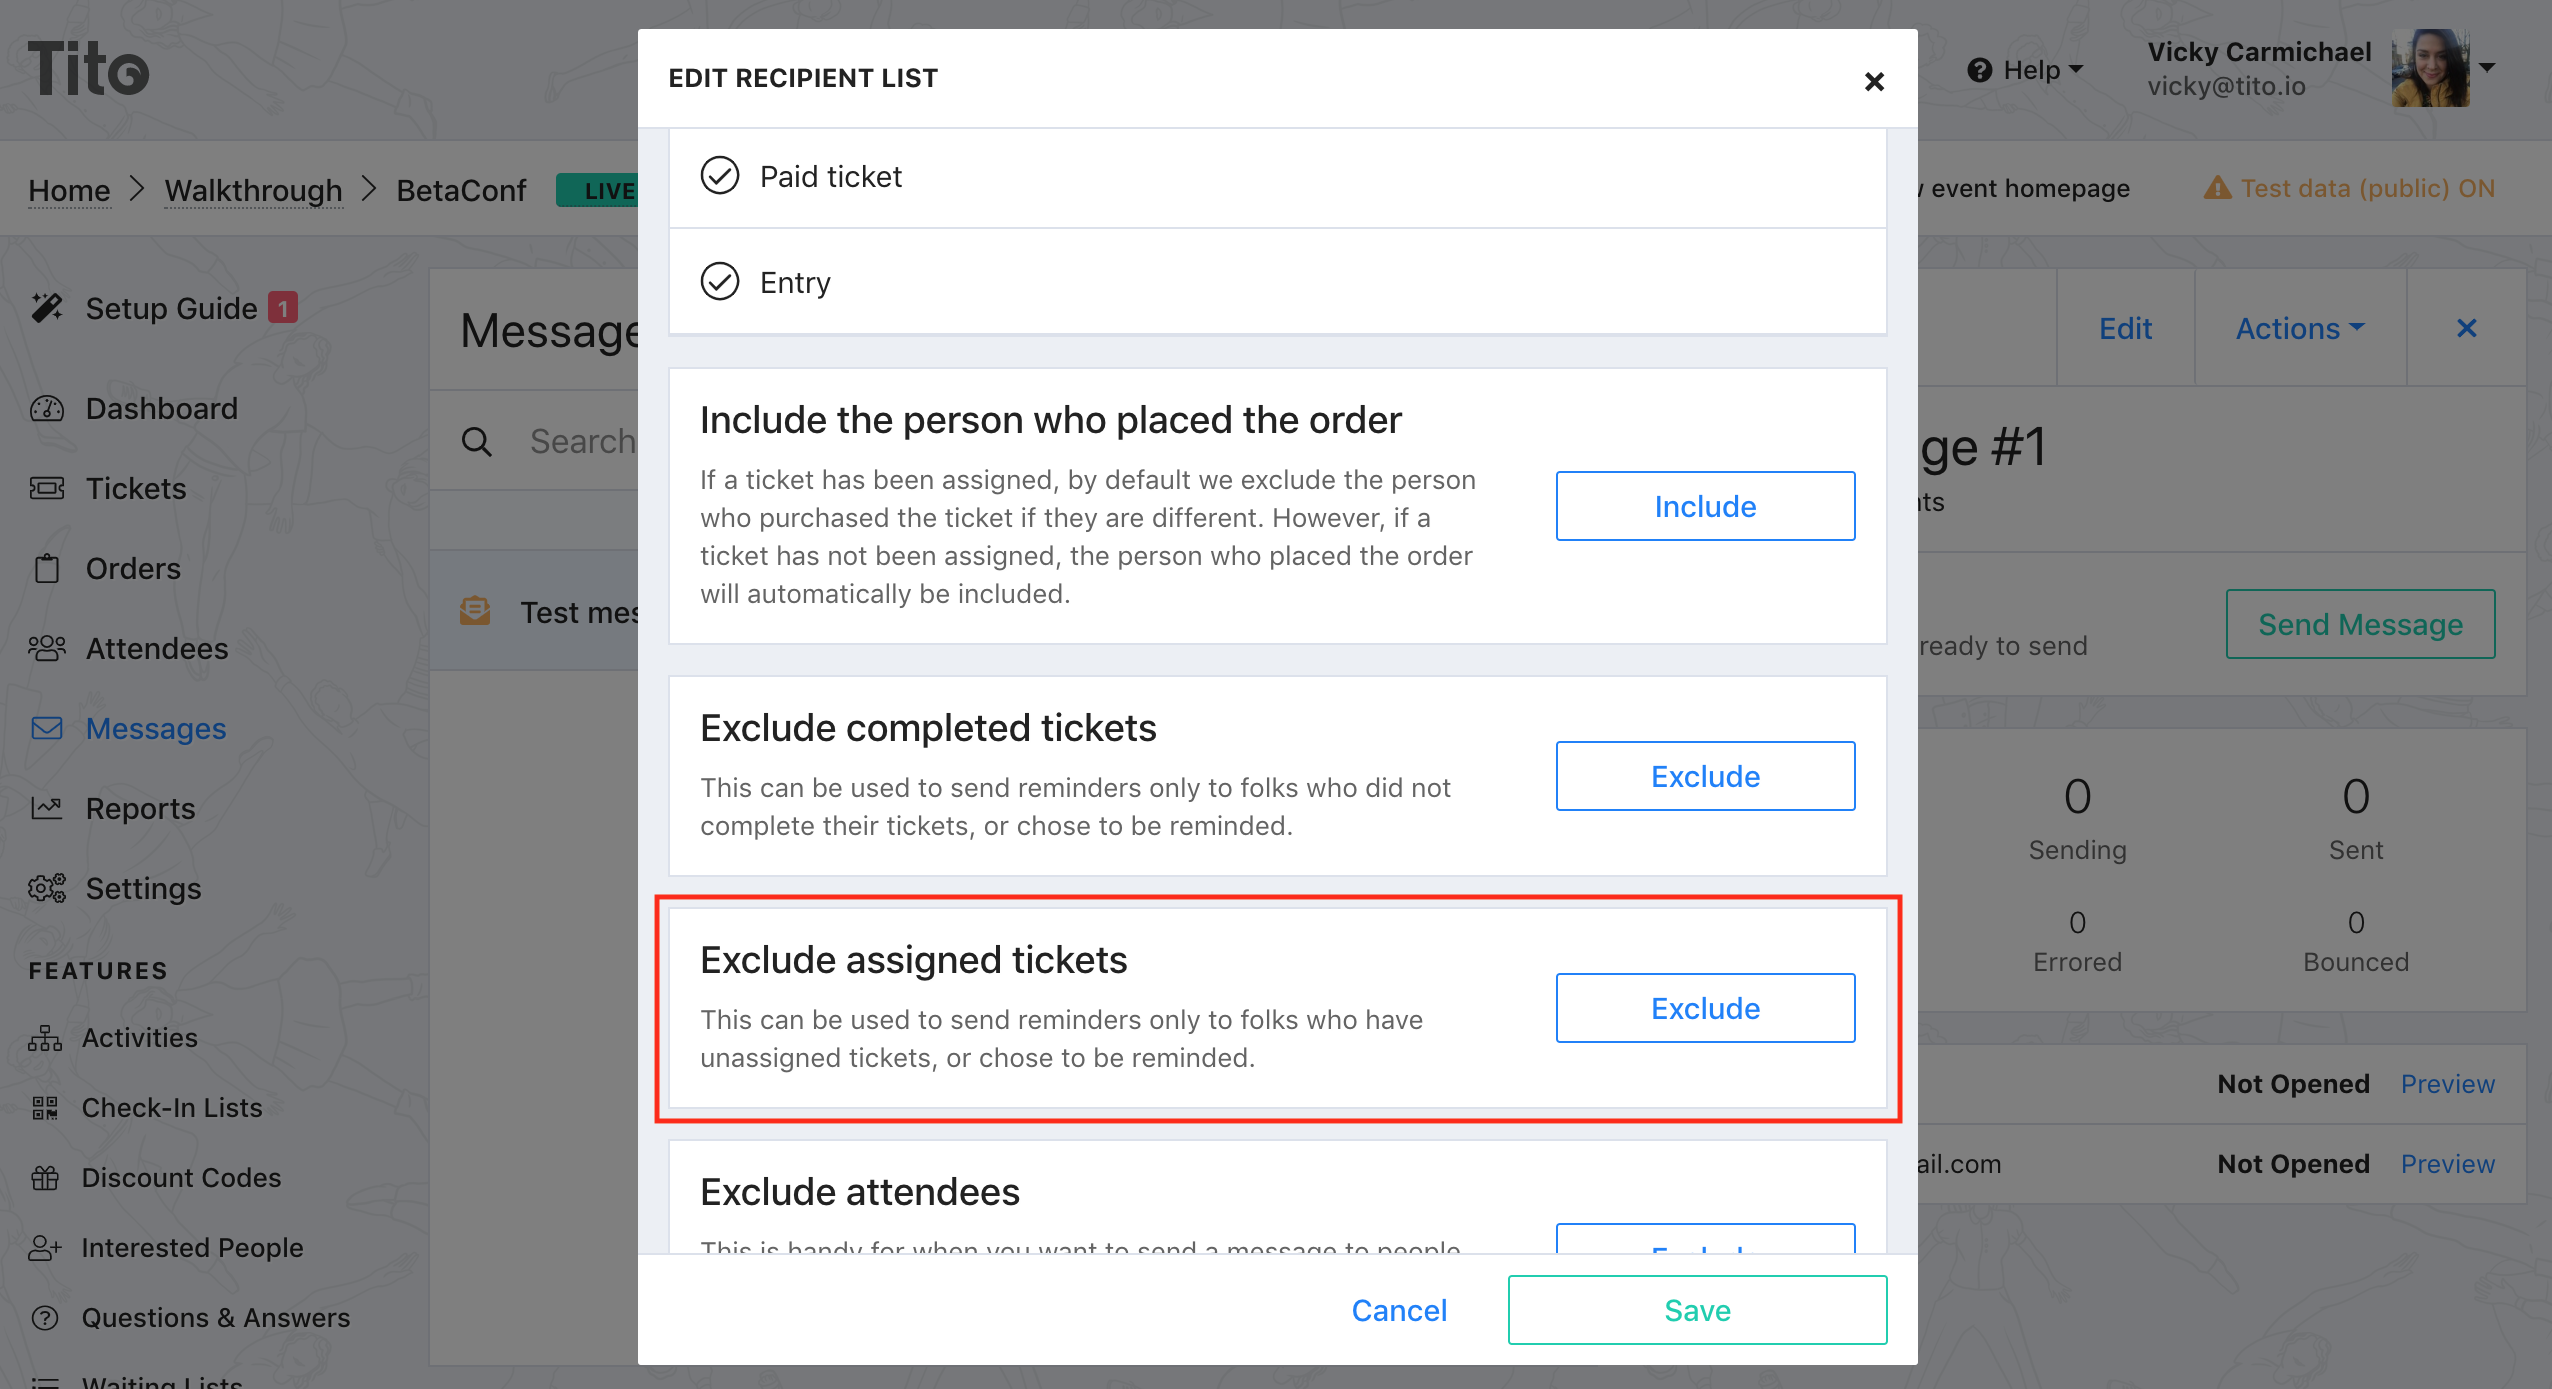 The Edit recipient list dialogue in Tito with the Exclude assigned tickets section highlighted.